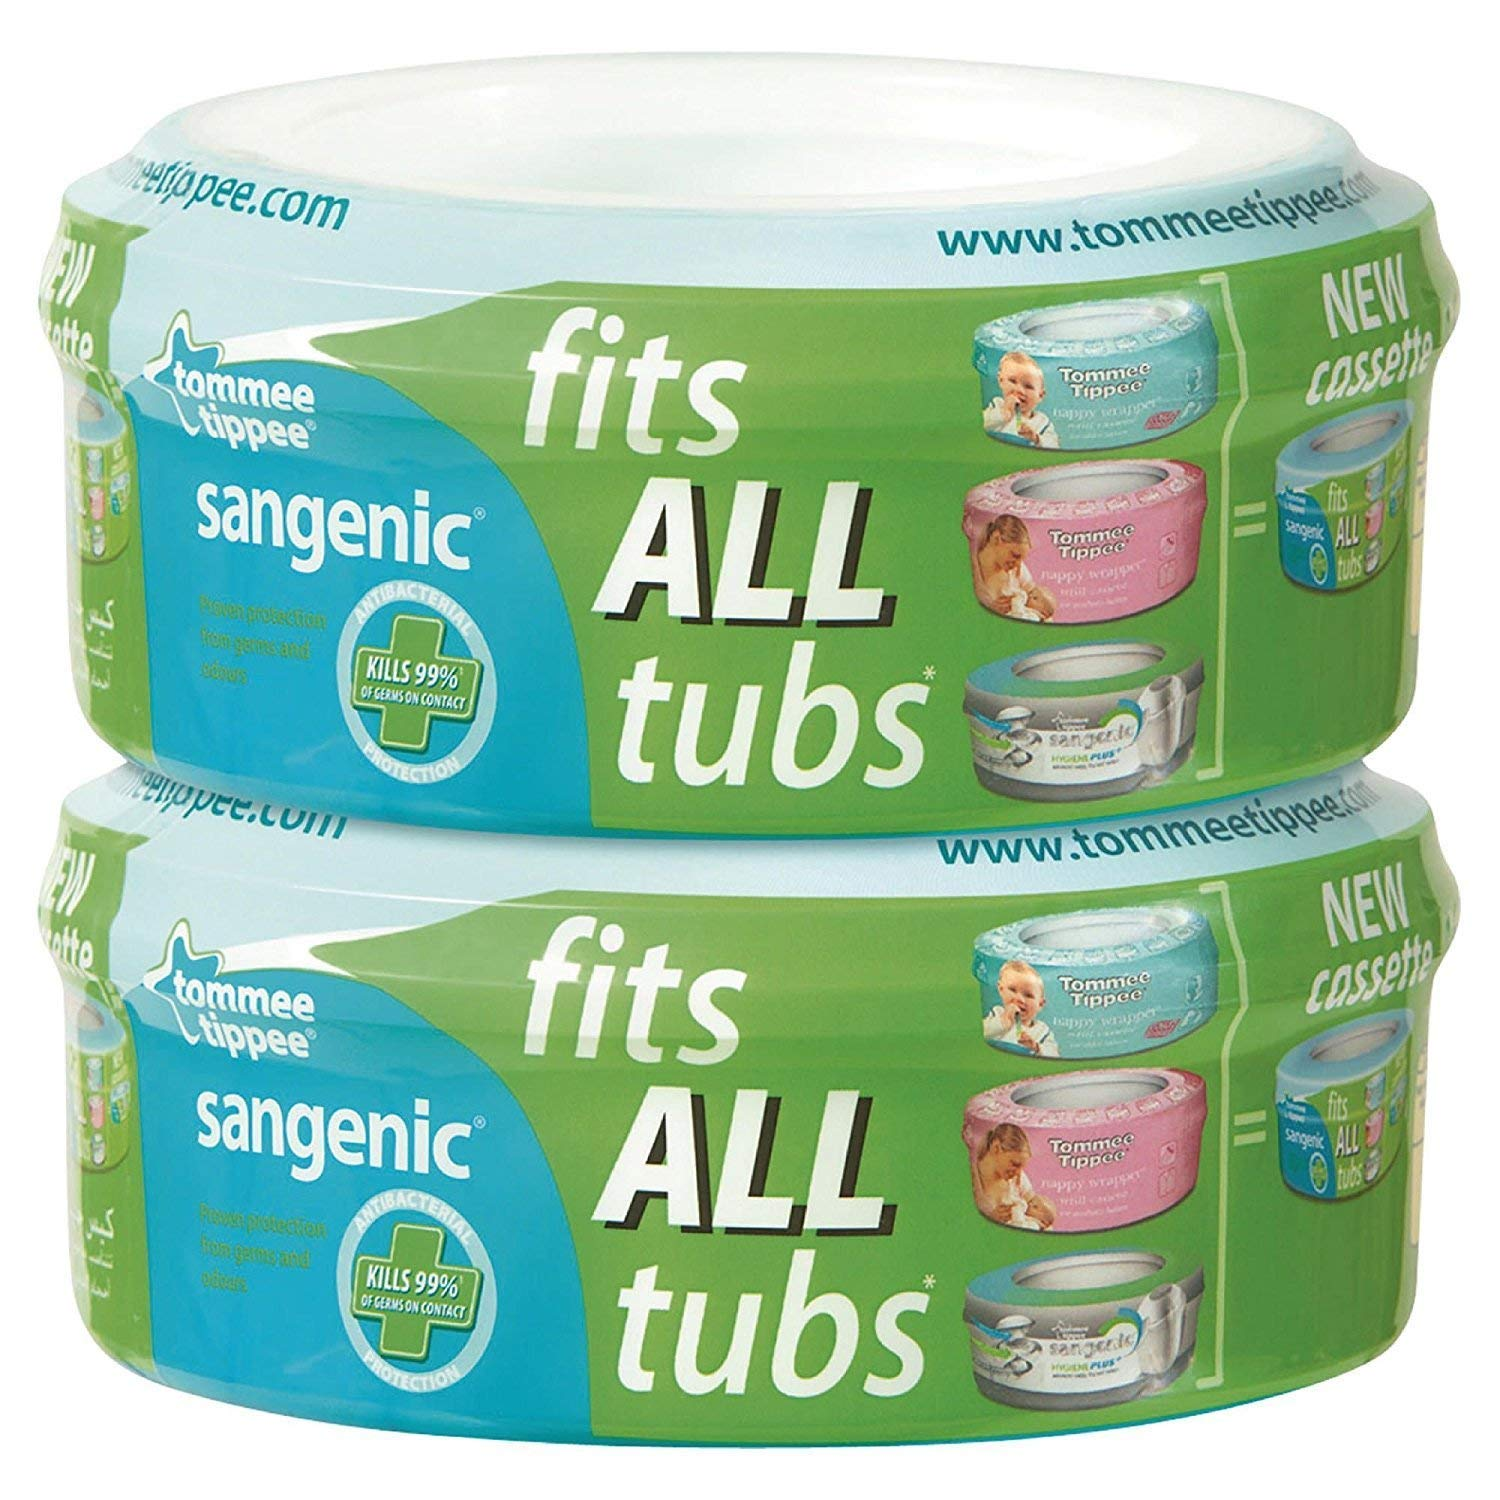 Tommee Tippee–Rolls of Bags Universal for Sangenic Nappy Wrapper, 2Pieces Jackel International